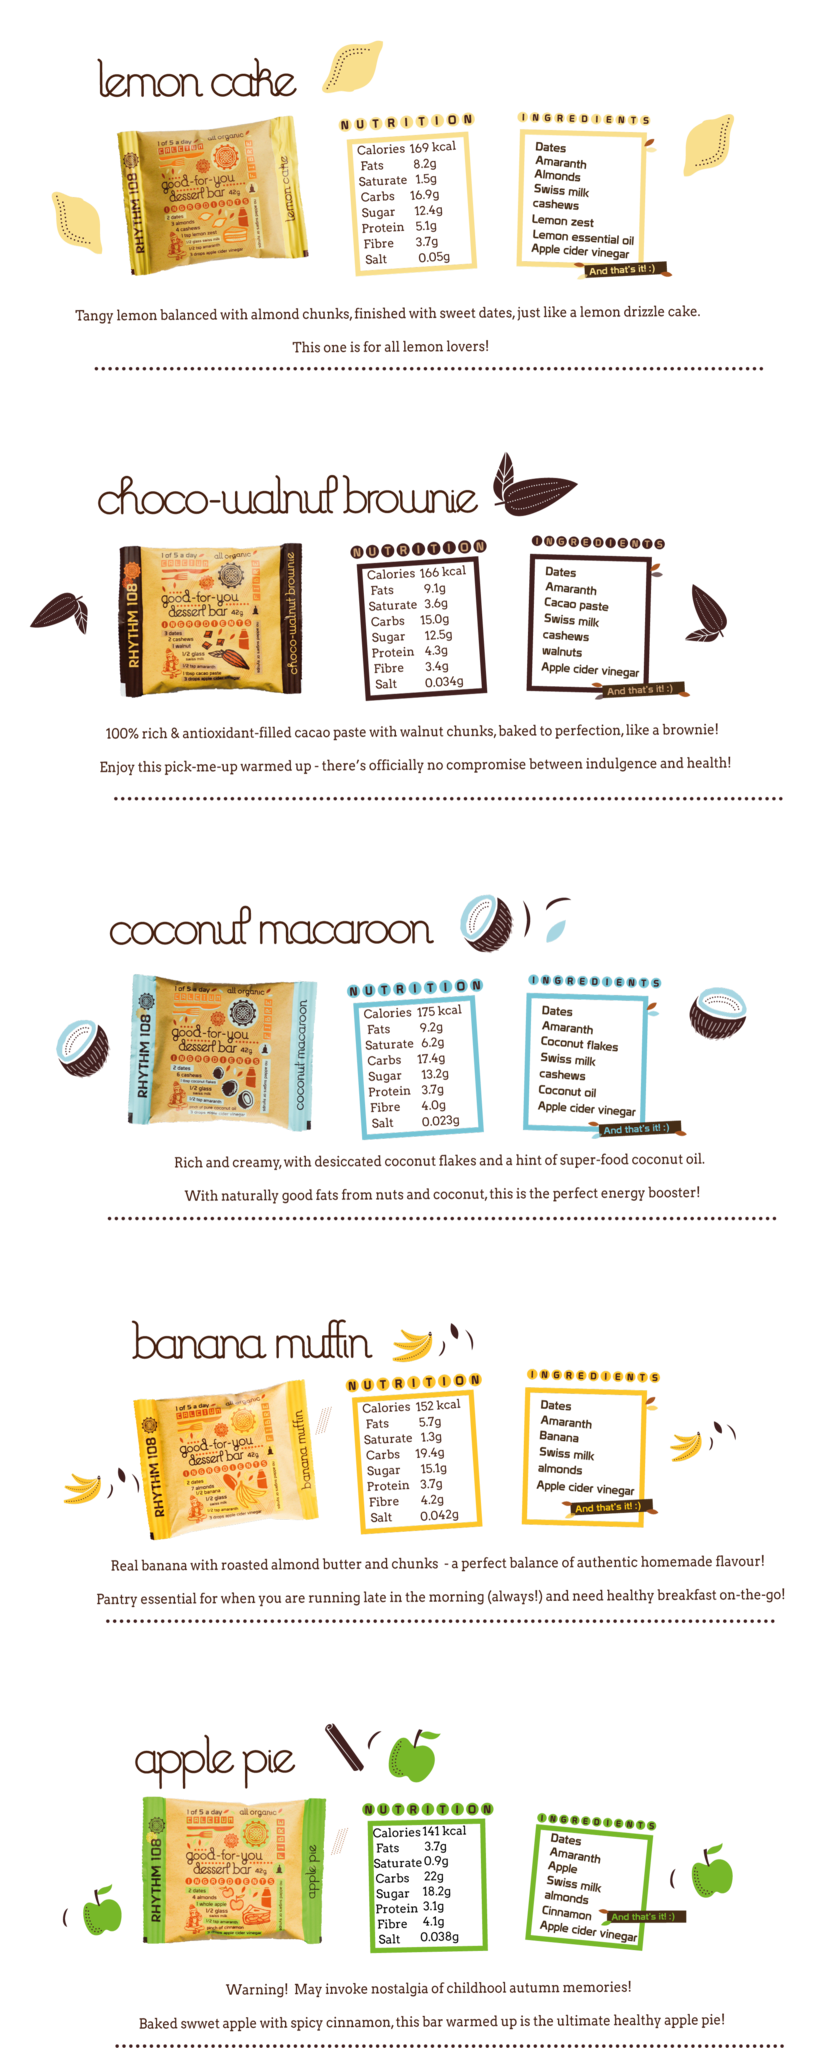 Features-banner_BANANAMUFFIN_3_c9d1811f-0a26-4212-b14b-74bab1825bf3_2048x2048.png